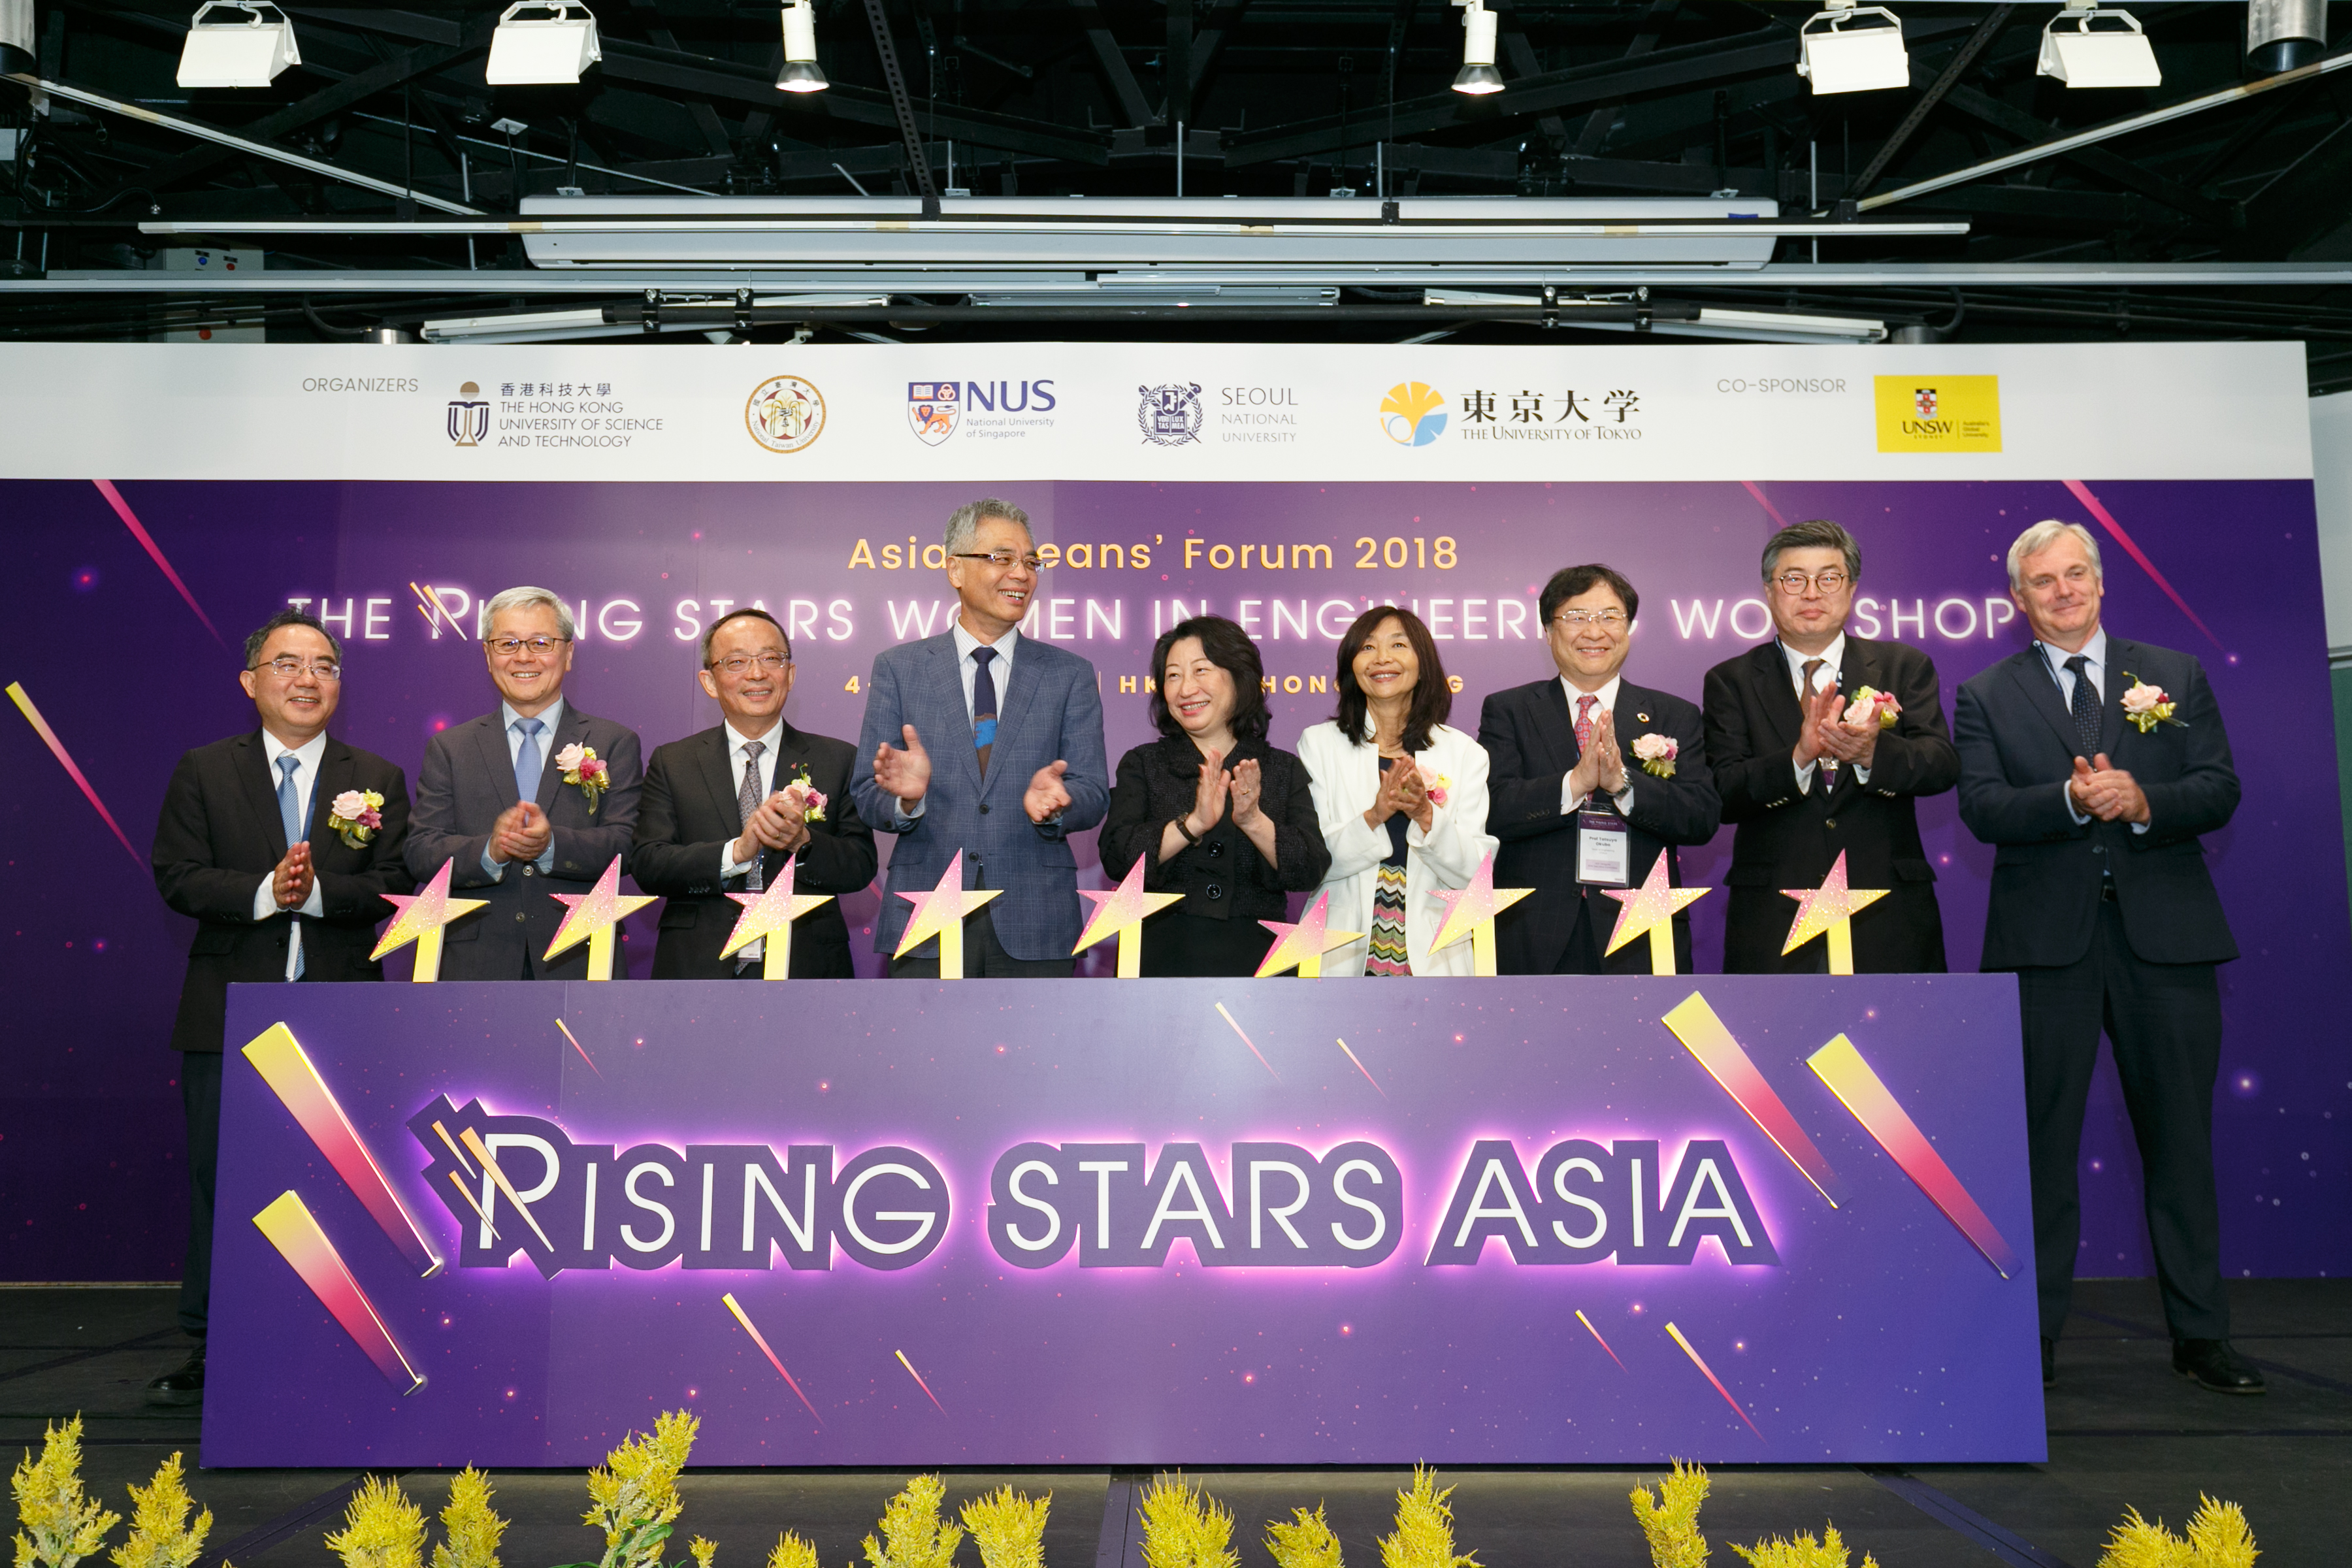 The Rising Stars Women in Engineering Workshop開幕典禮